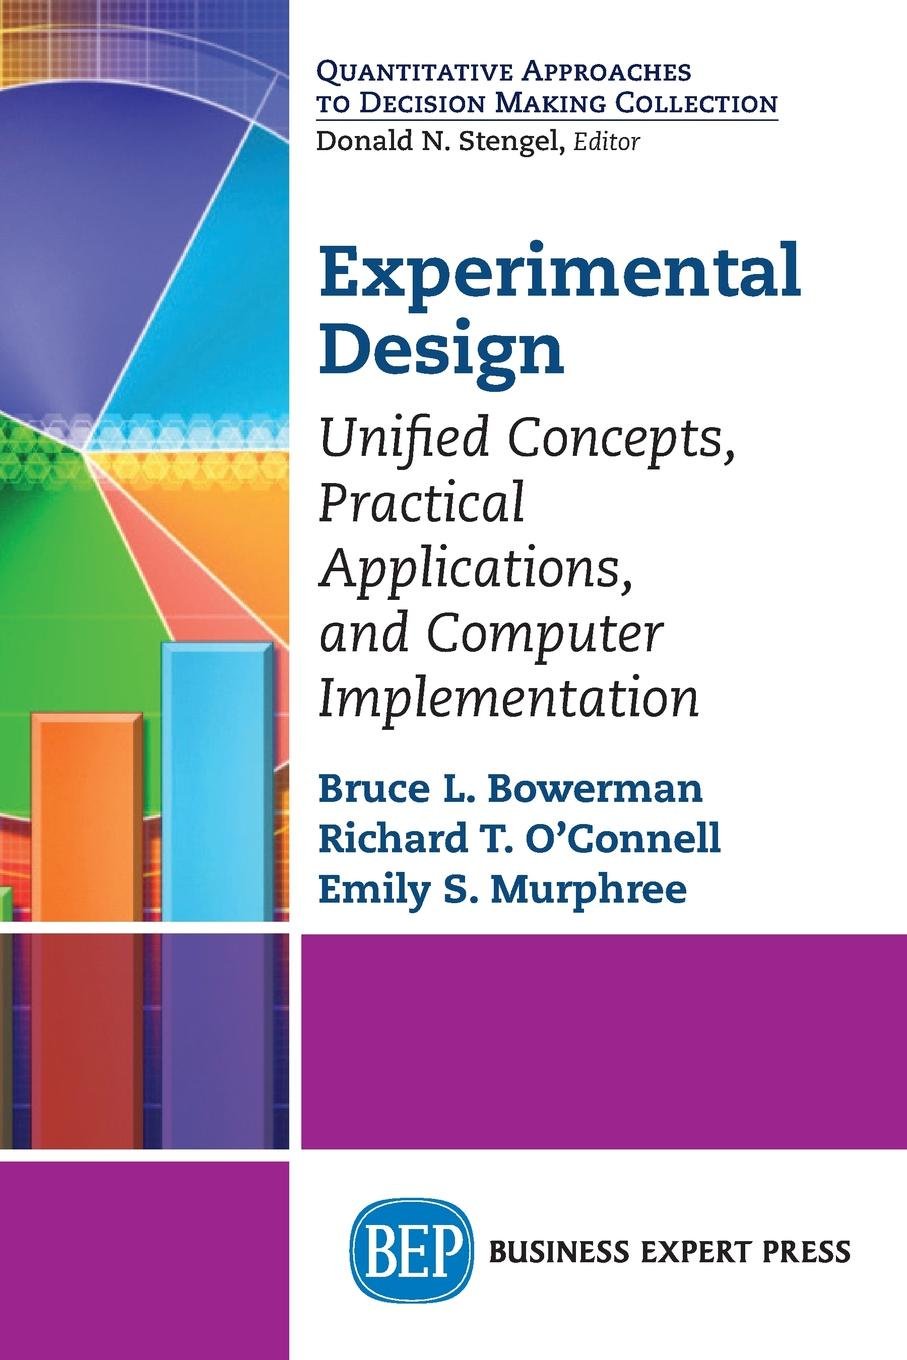 Bruce L. Bowerman, Richard T. O'Connell Experimental Design. Unified Concepts, Practical Applications, and Computer Implementation n galwey w introduction to mixed modelling beyond regression and analysis of variance